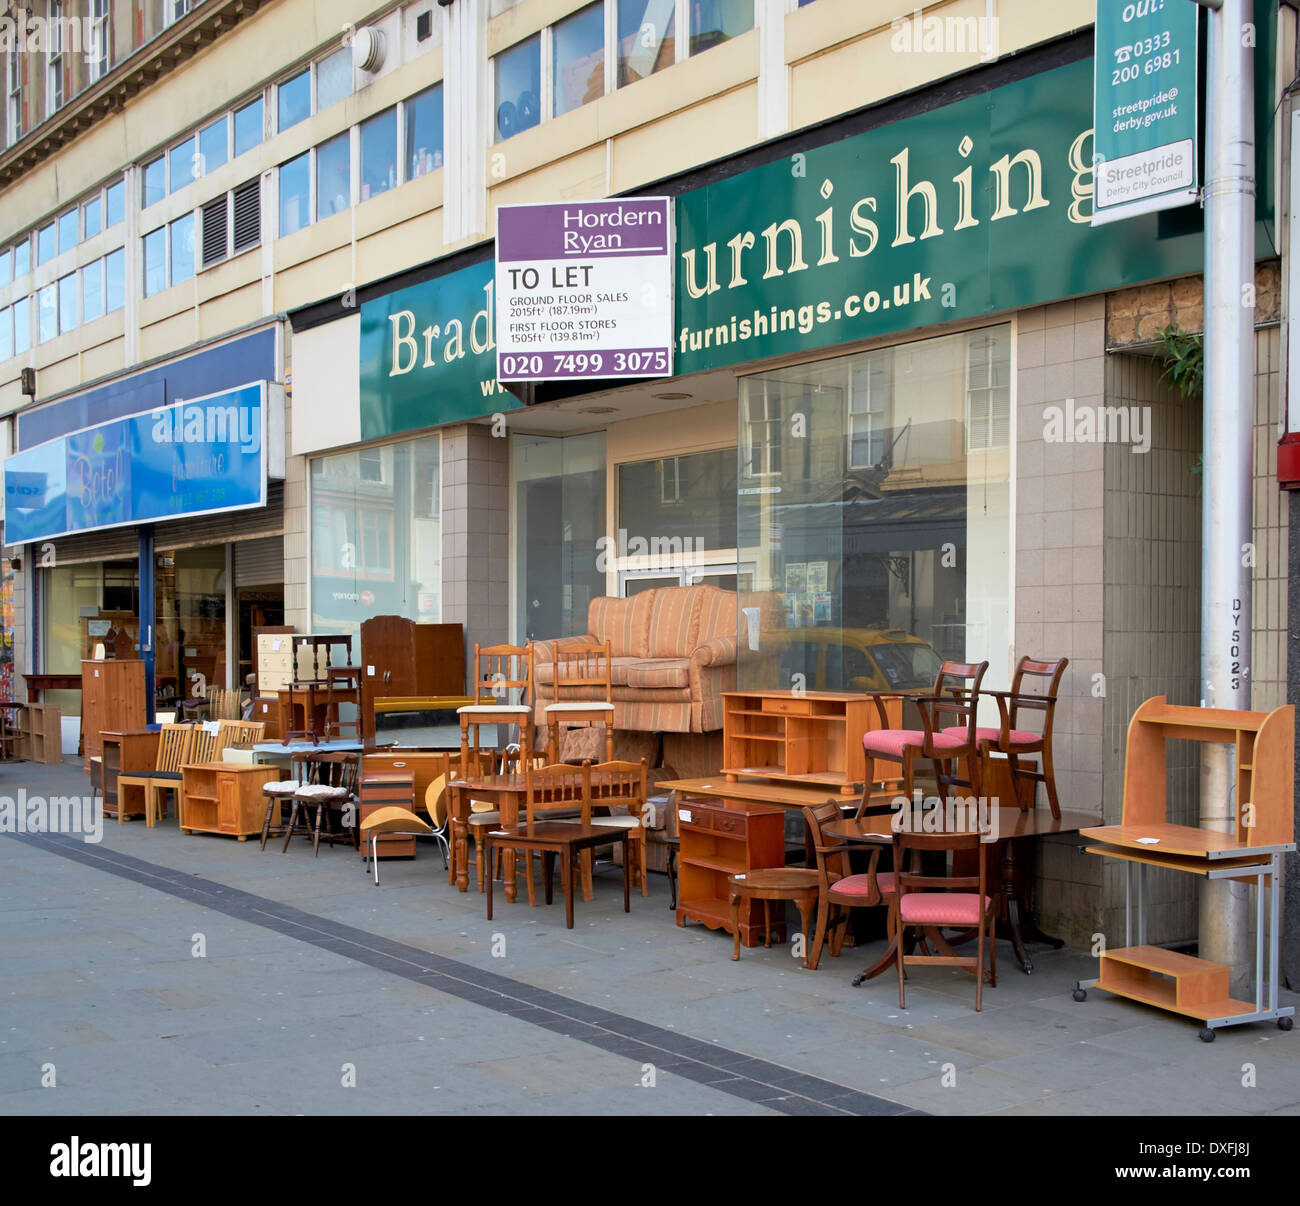 Genial Used Second Hand Furniture On Sale On A UK High Street